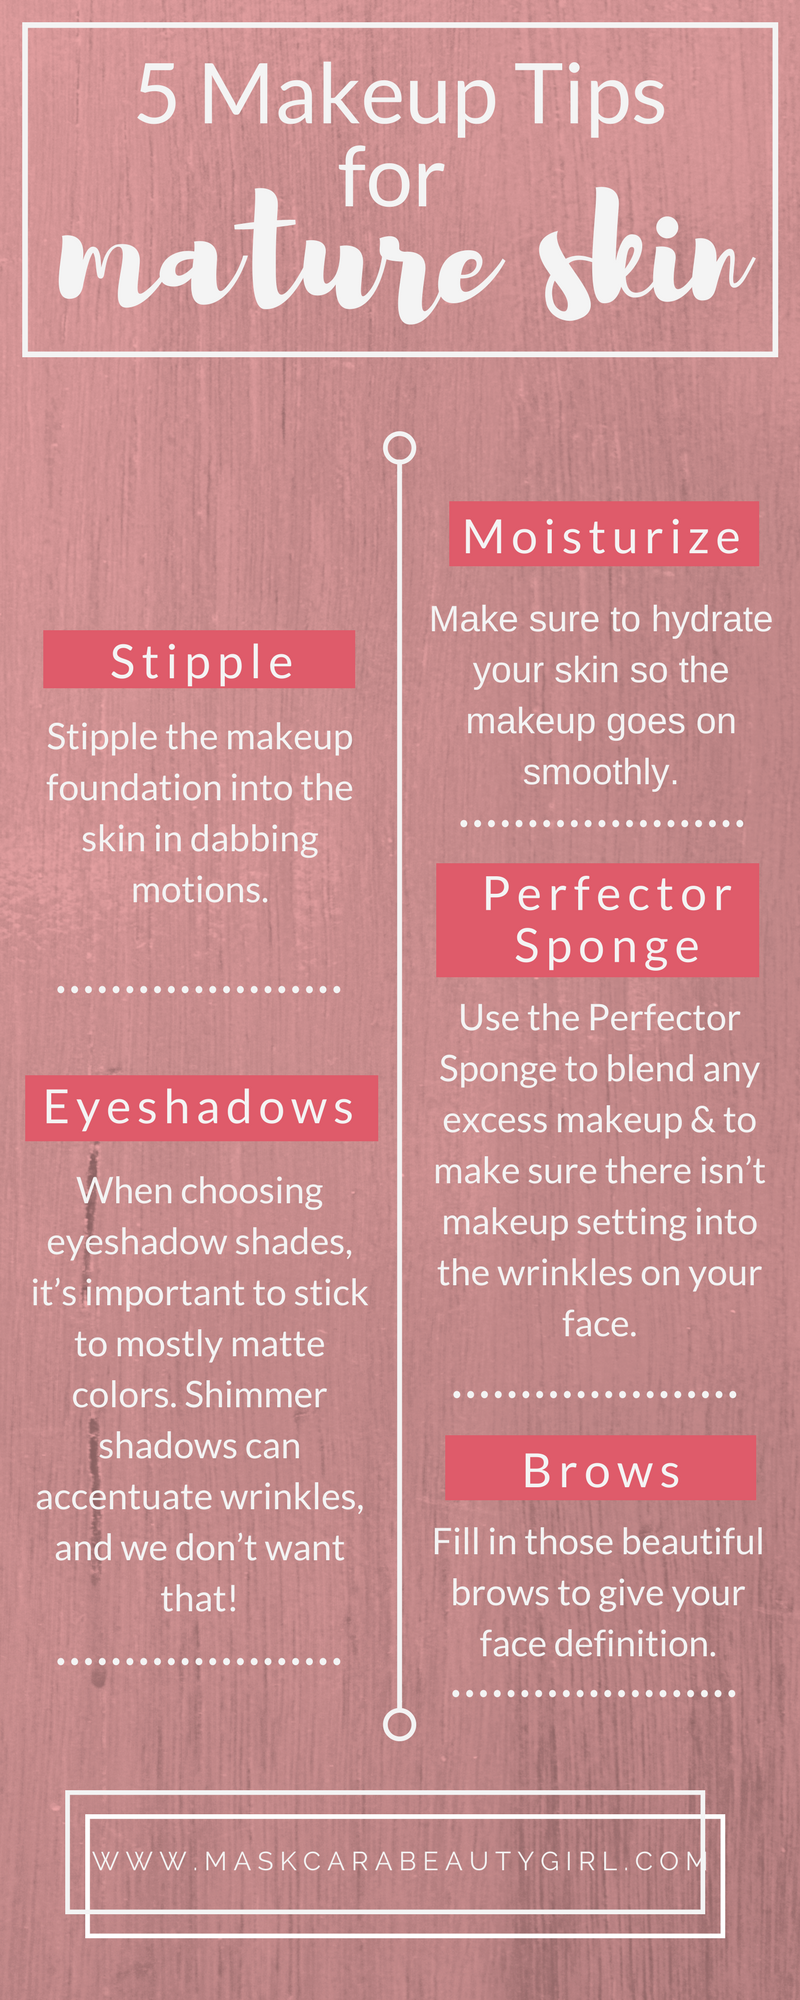 how to look mature with makeup